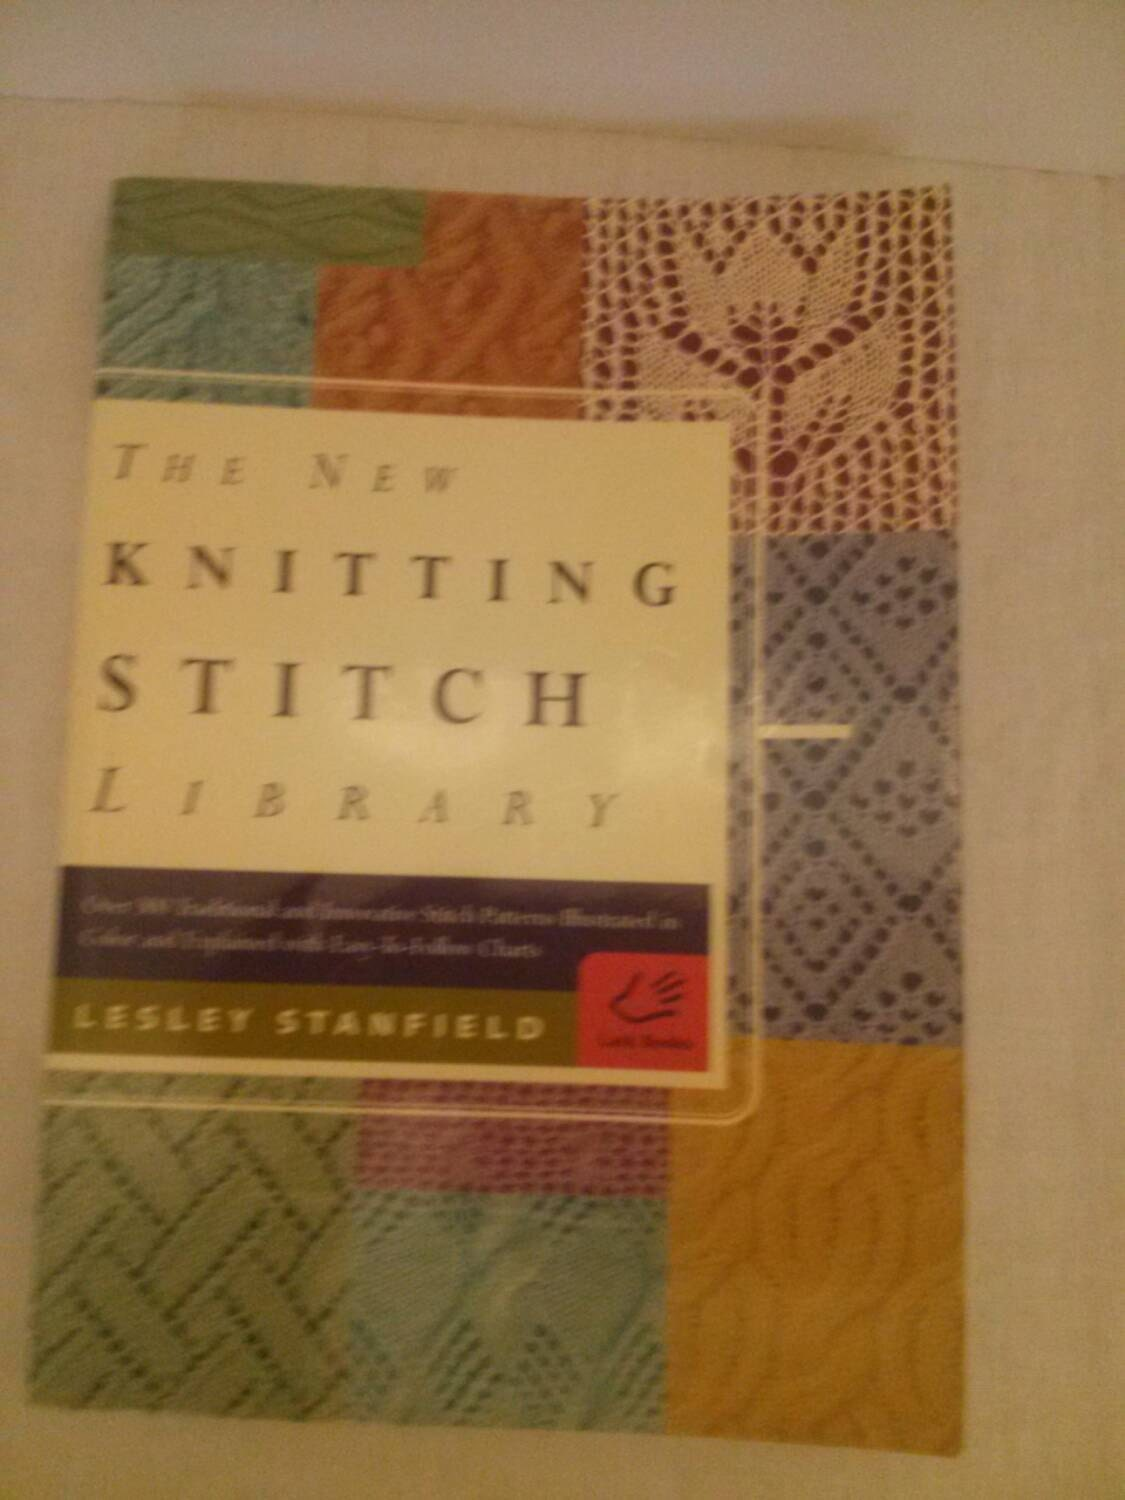 The New Knitting Stitch Library soft cover book by Artsthrift